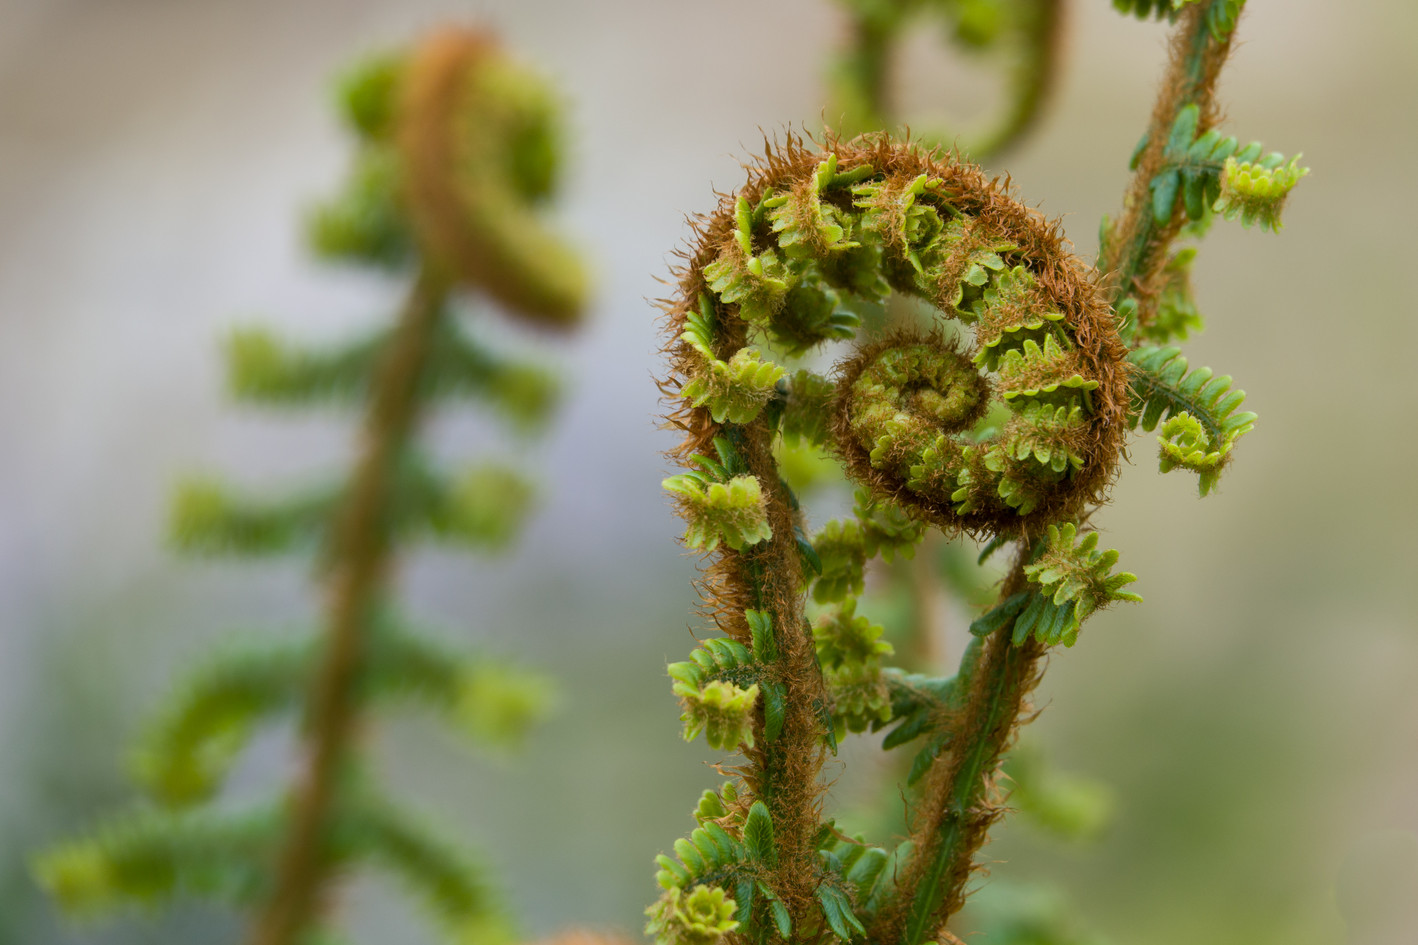 Unfurling fern